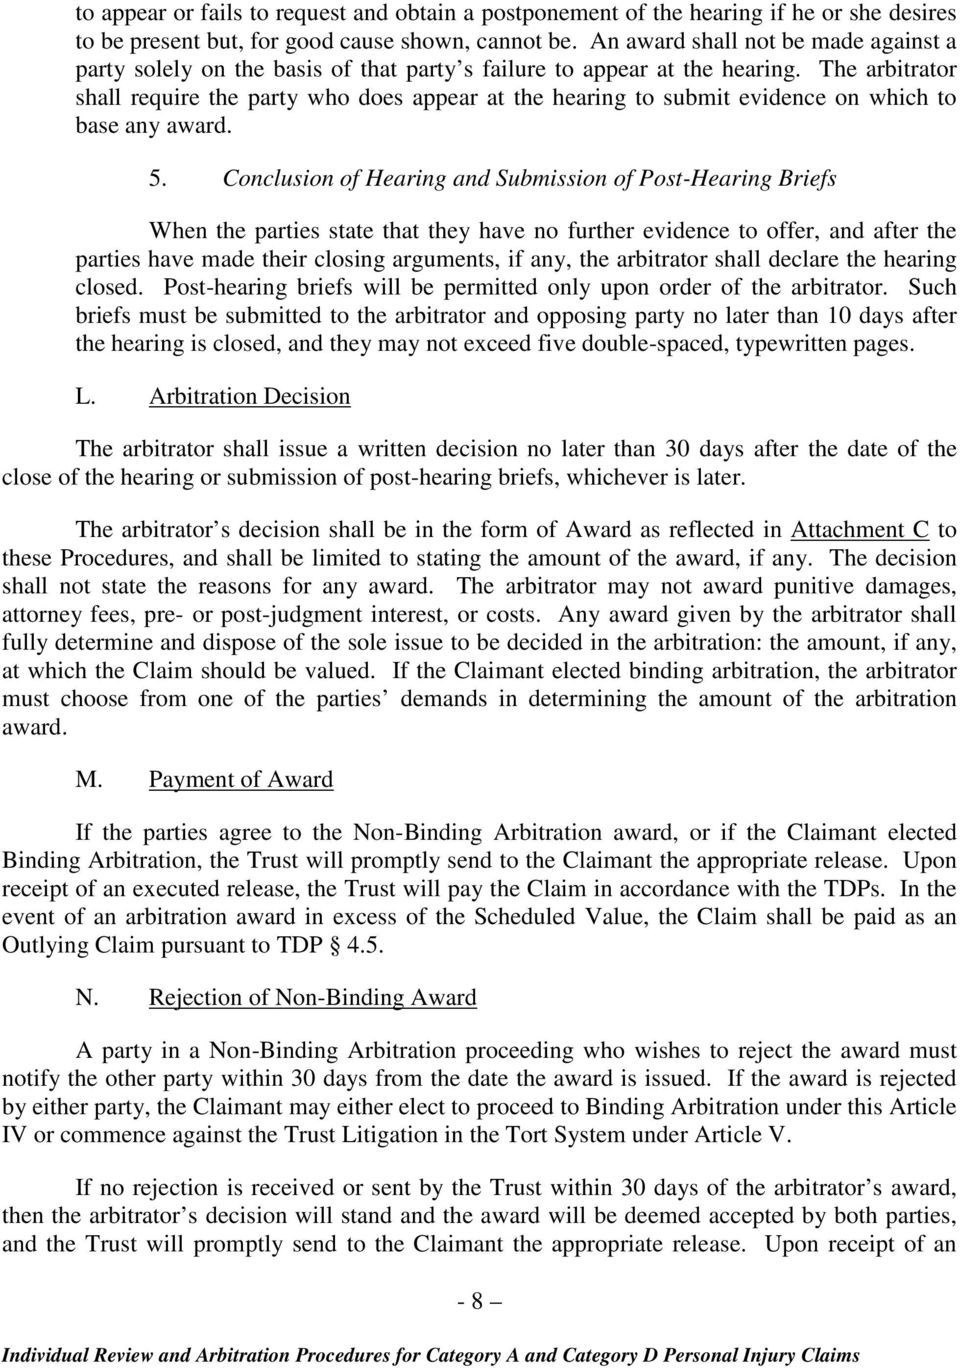 The arbitrator shall require the party who does appear at the hearing to submit evidence on which to base any award. 5.